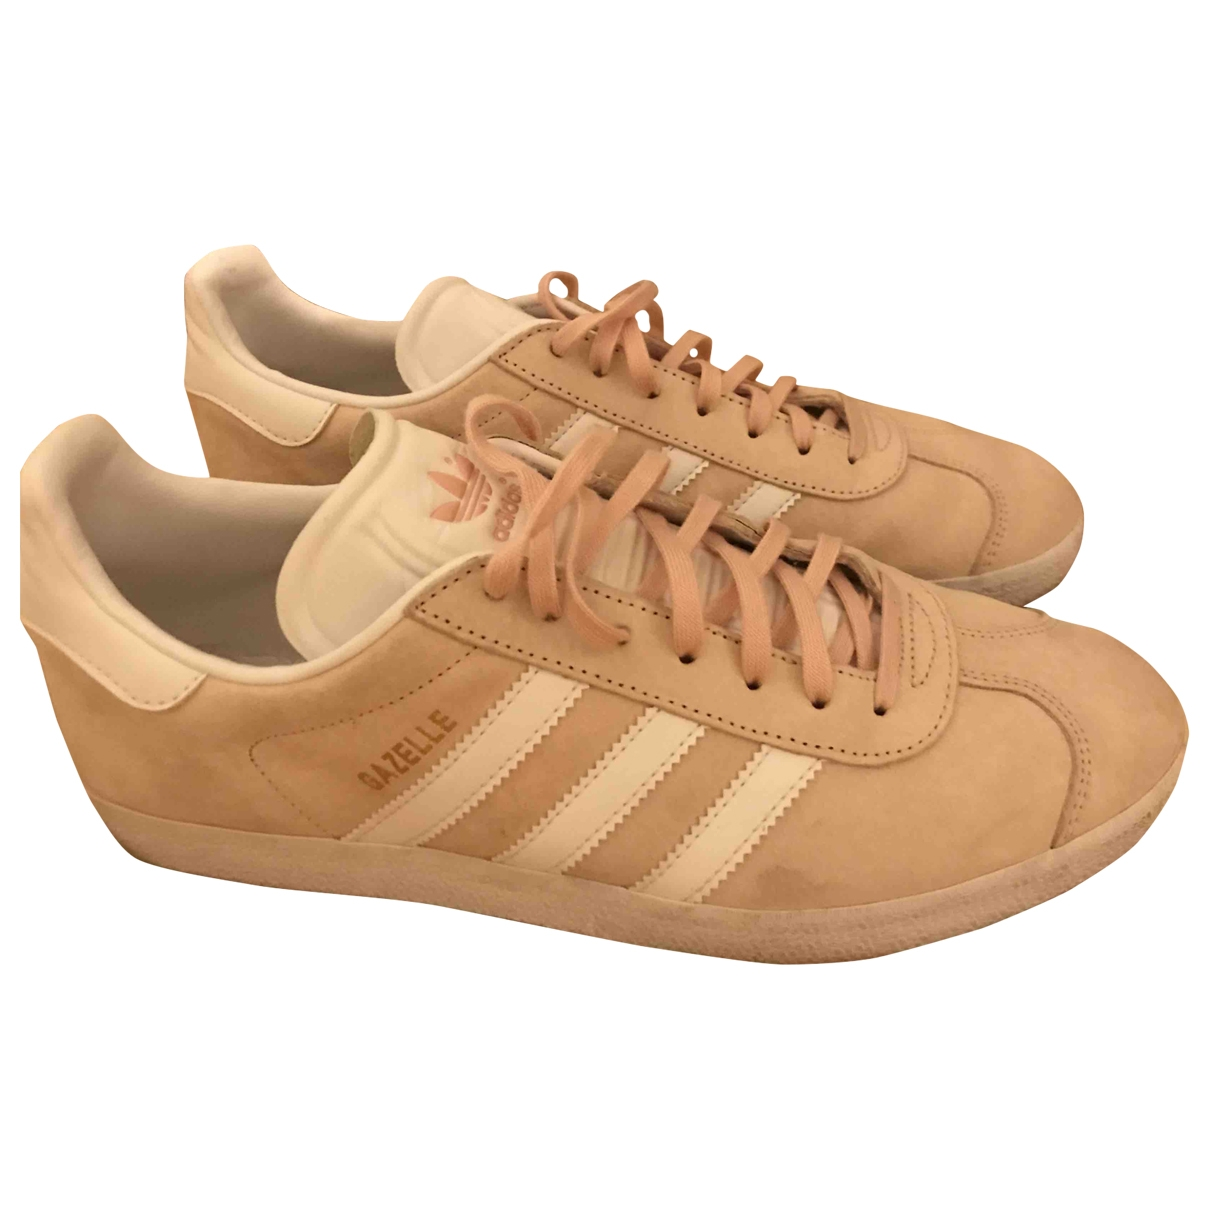 Adidas Gazelle Pink Suede Trainers for Men 44 EU